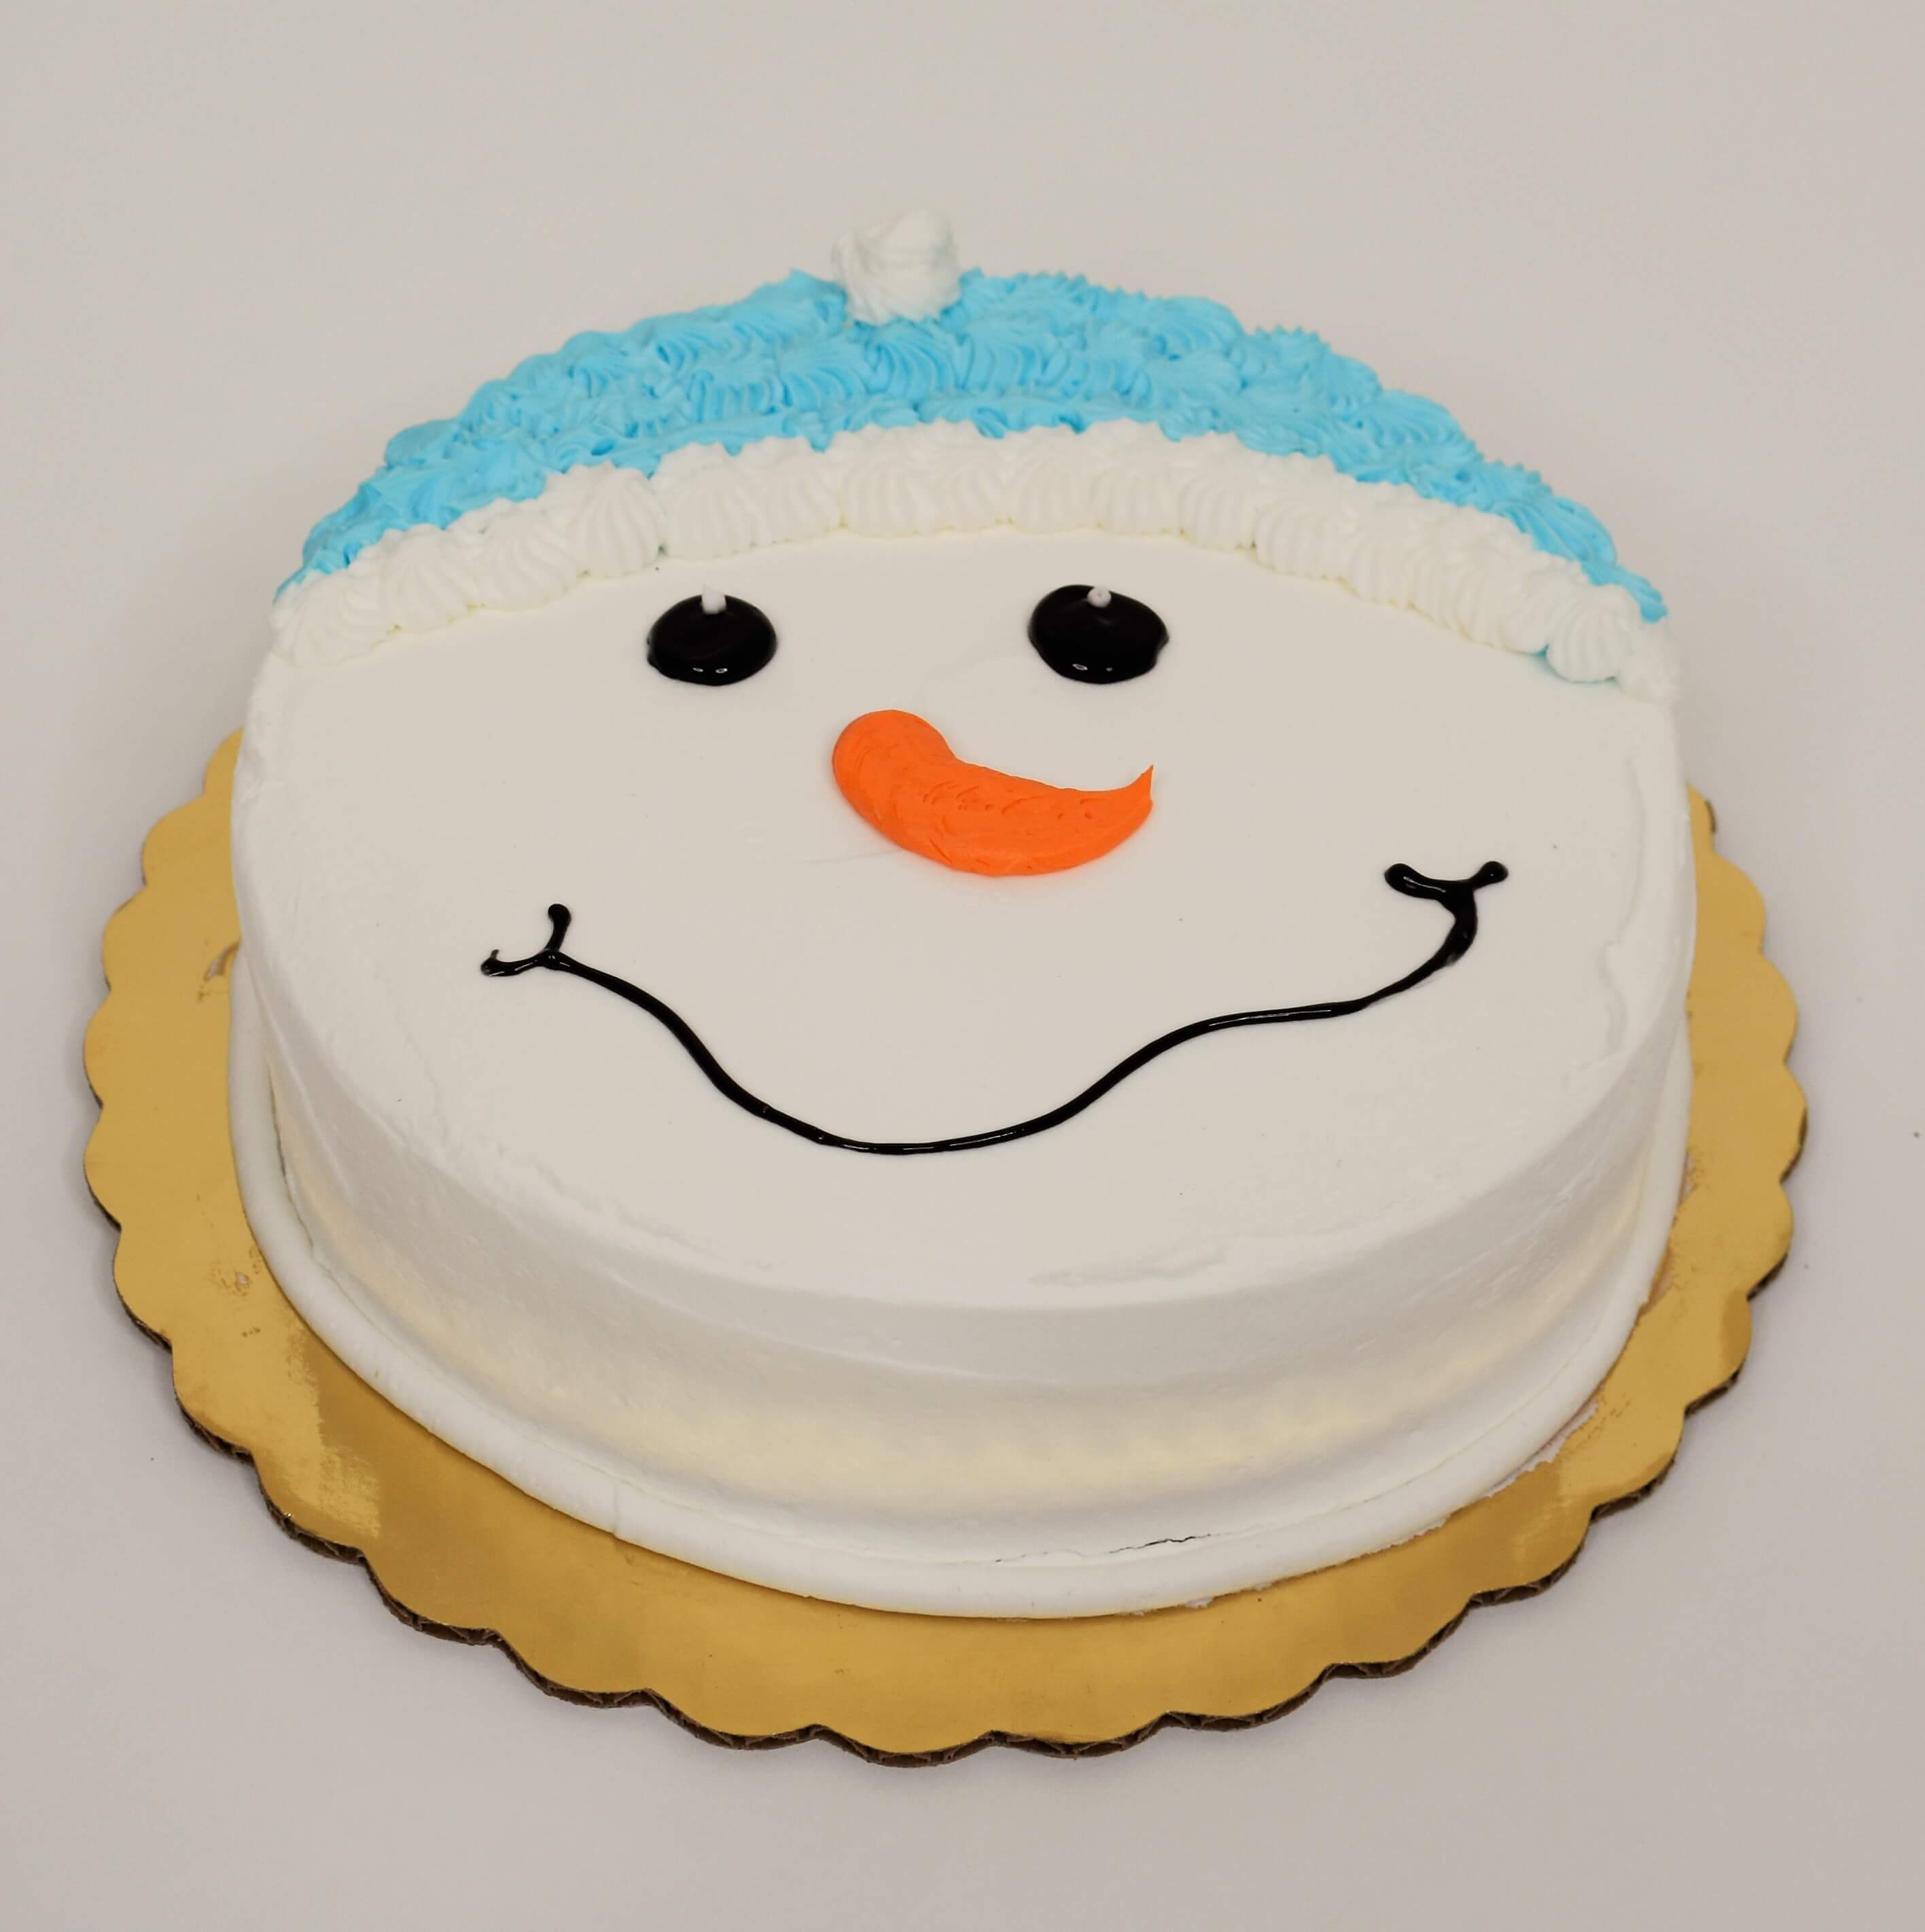 McArthur's Bakery Custom Cake with Snowman, Blue Hat, Snowman Face